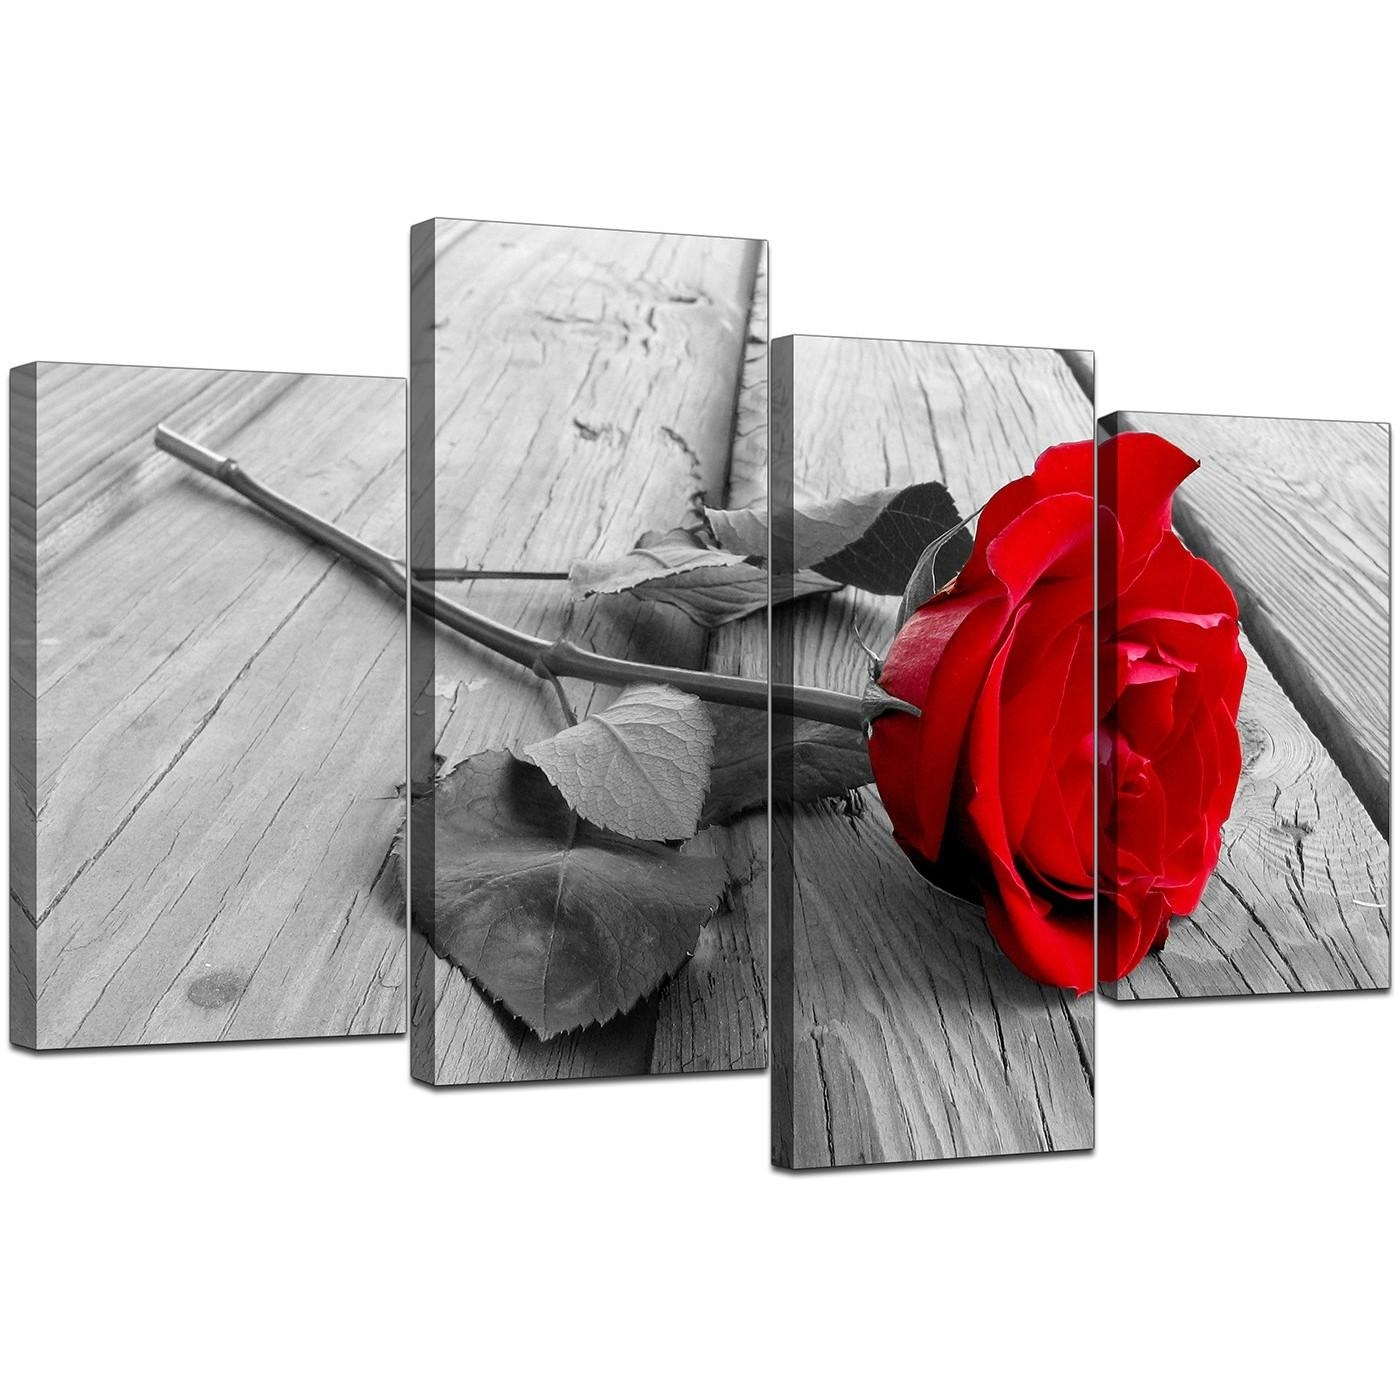 Floral Canvas Wall Art In Red Black And White – For Living Room Within Black And White Wall Art With Red (Image 11 of 20)